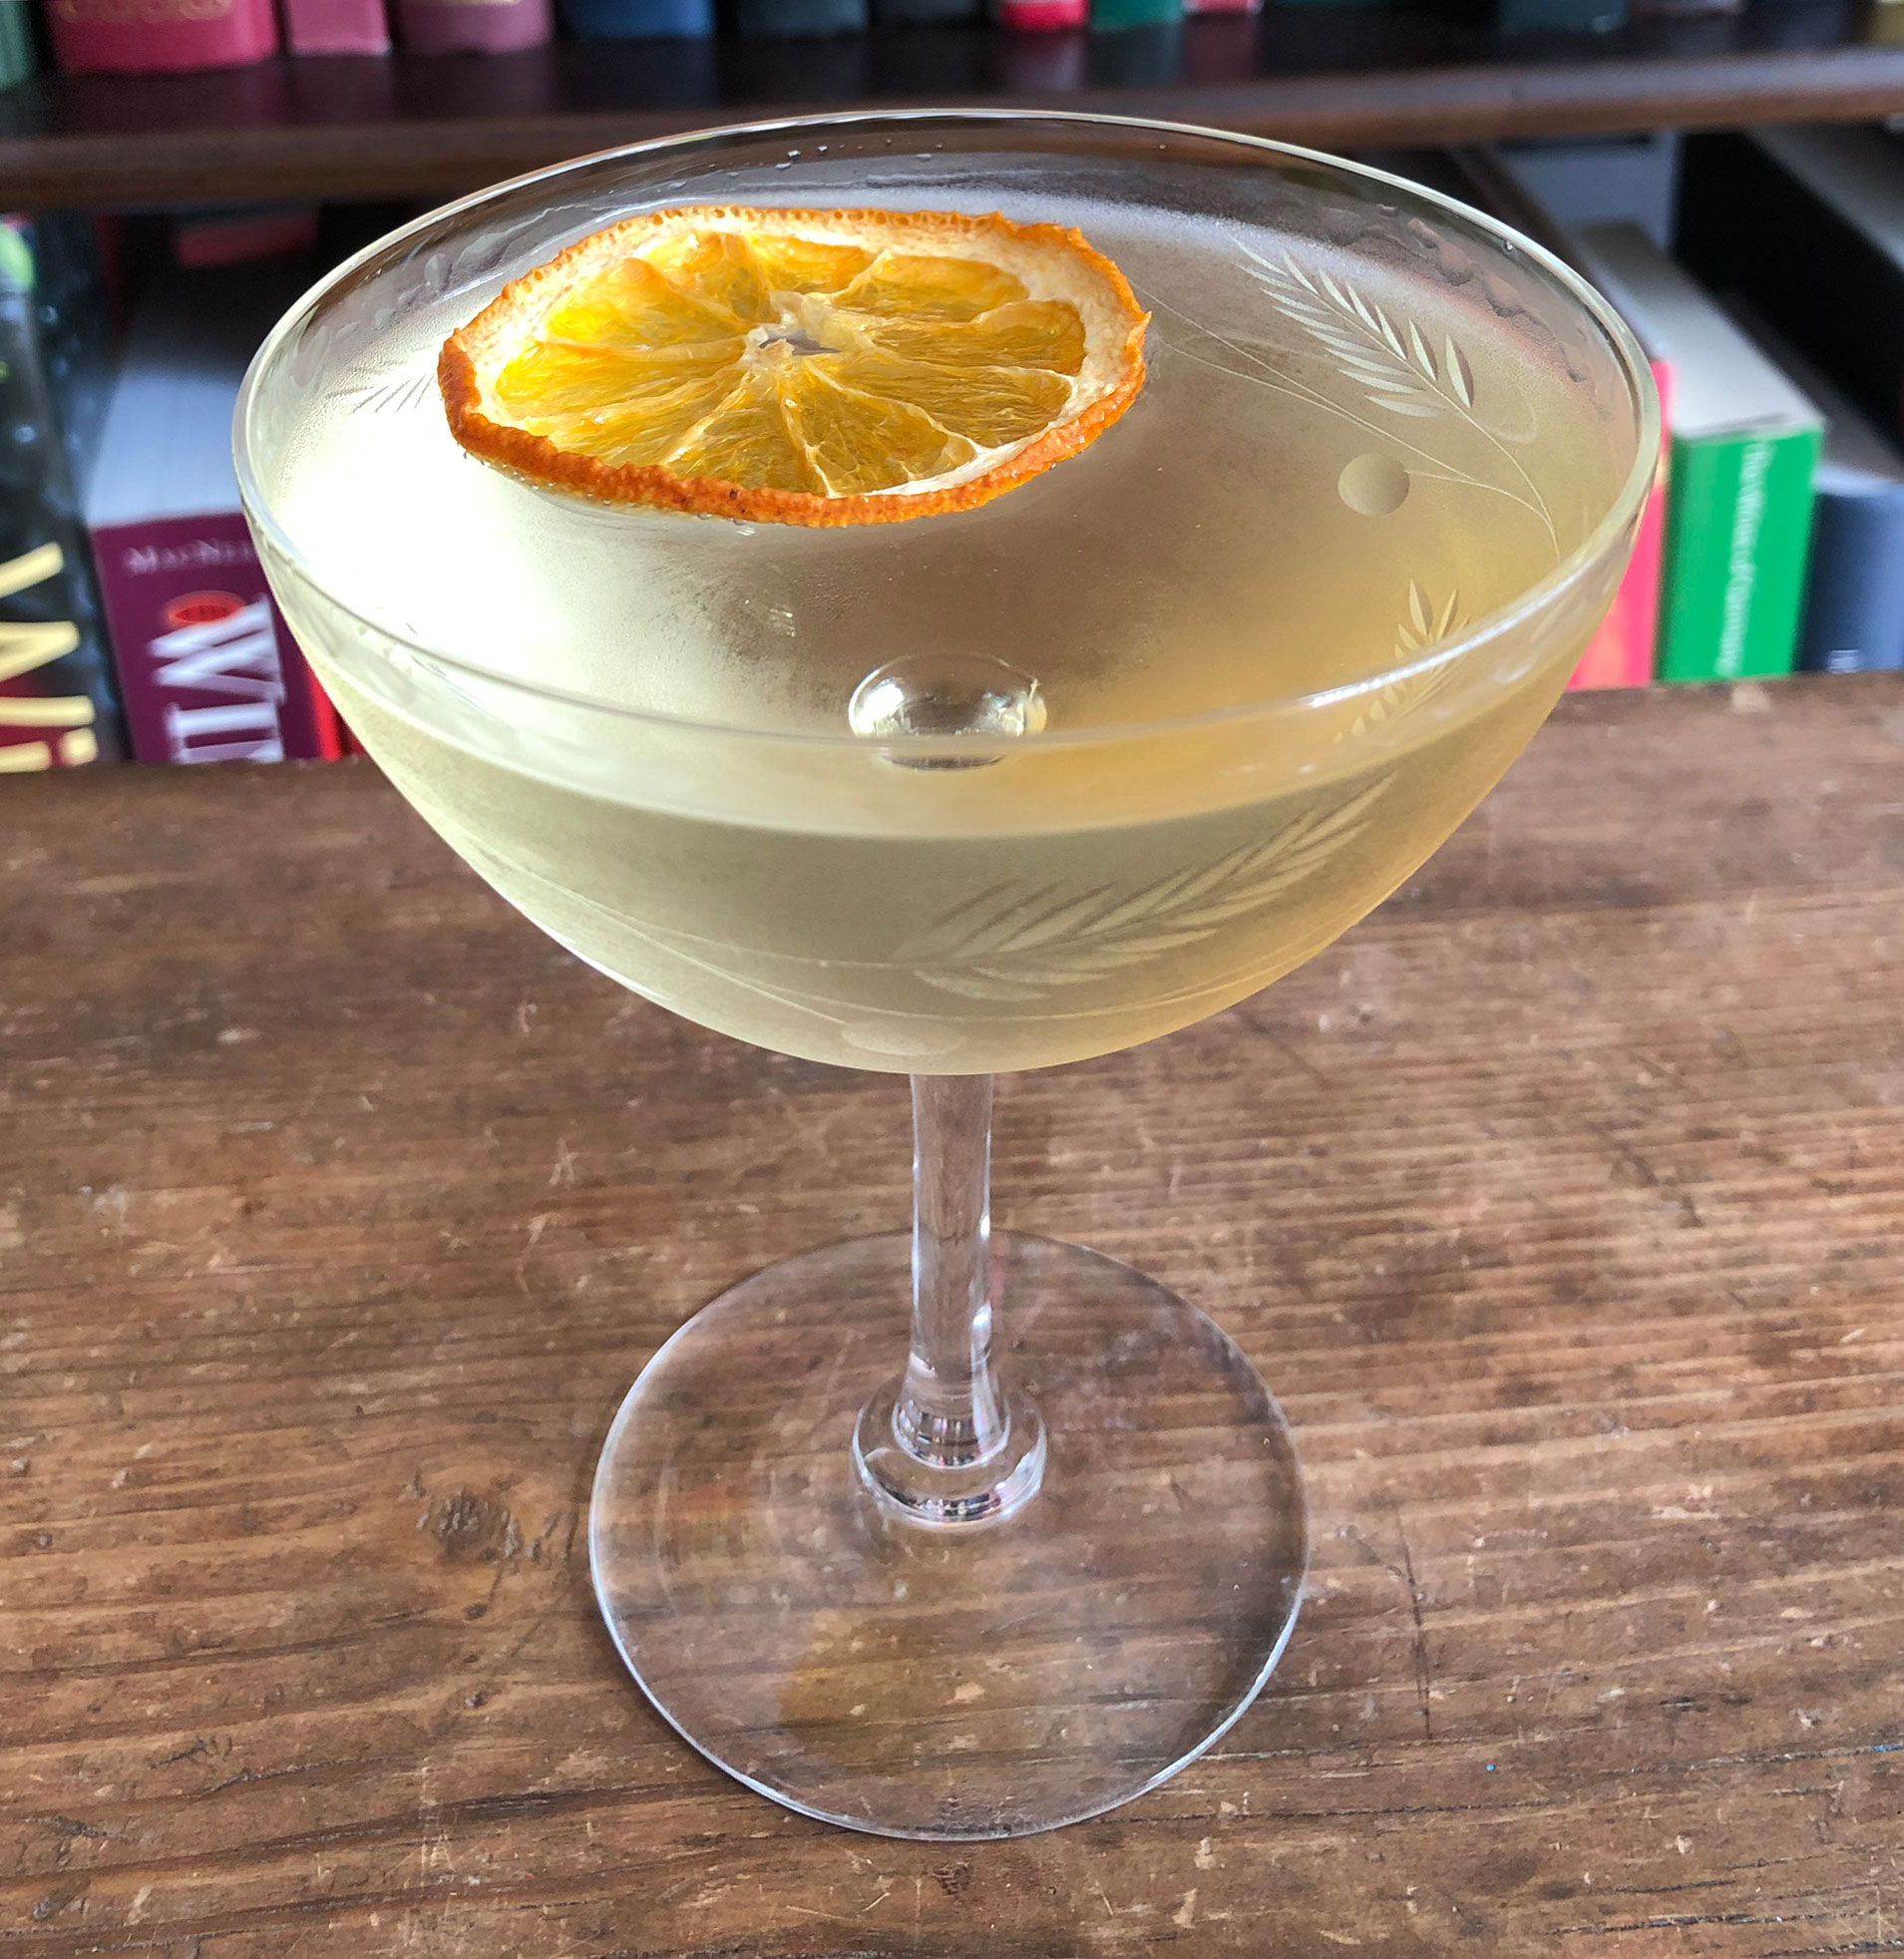 An example of the Ford Cocktail, the mixed drink (cocktail) featuring Hayman's Old Tom Gin, Dolin Dry Vermouth de Chambéry, and Bénédictine; photo by Lee Edwards